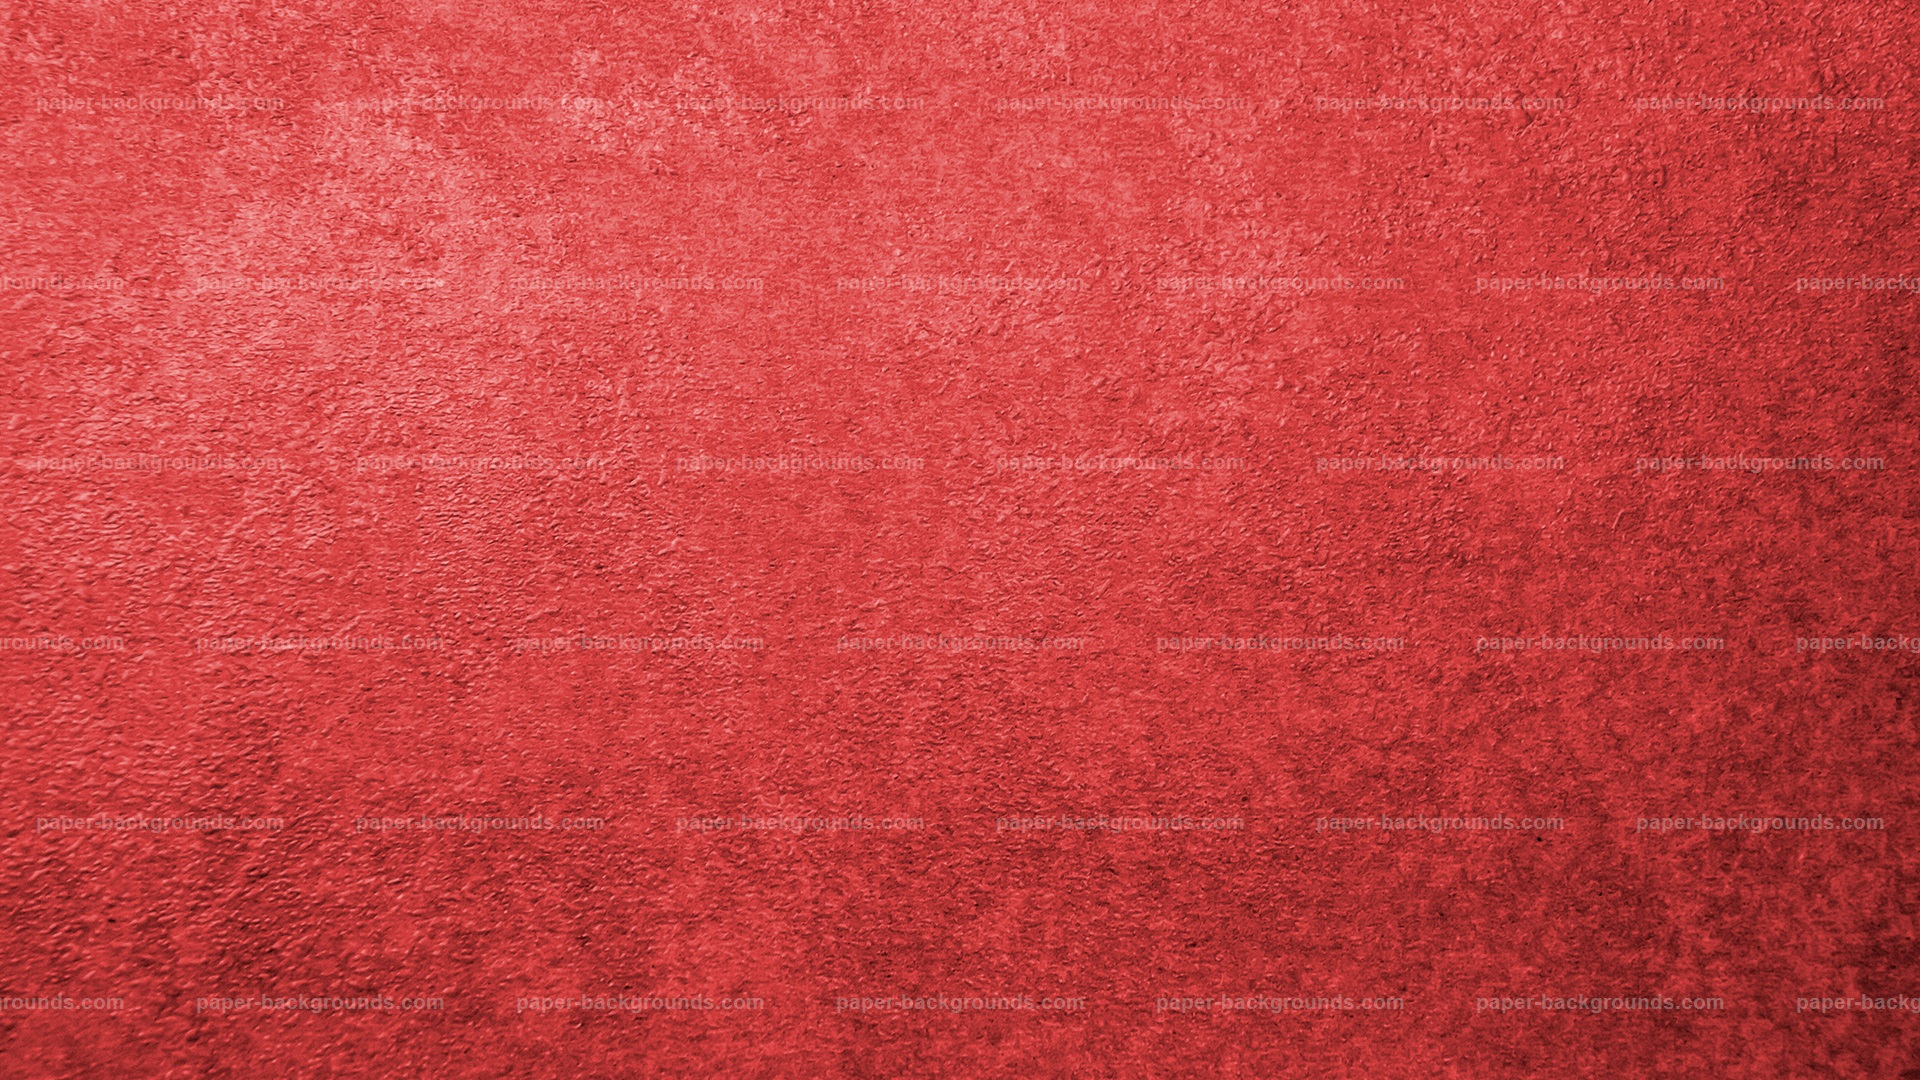 paper backgrounds com red wall texture vinta ound red wall texture 1920x1080